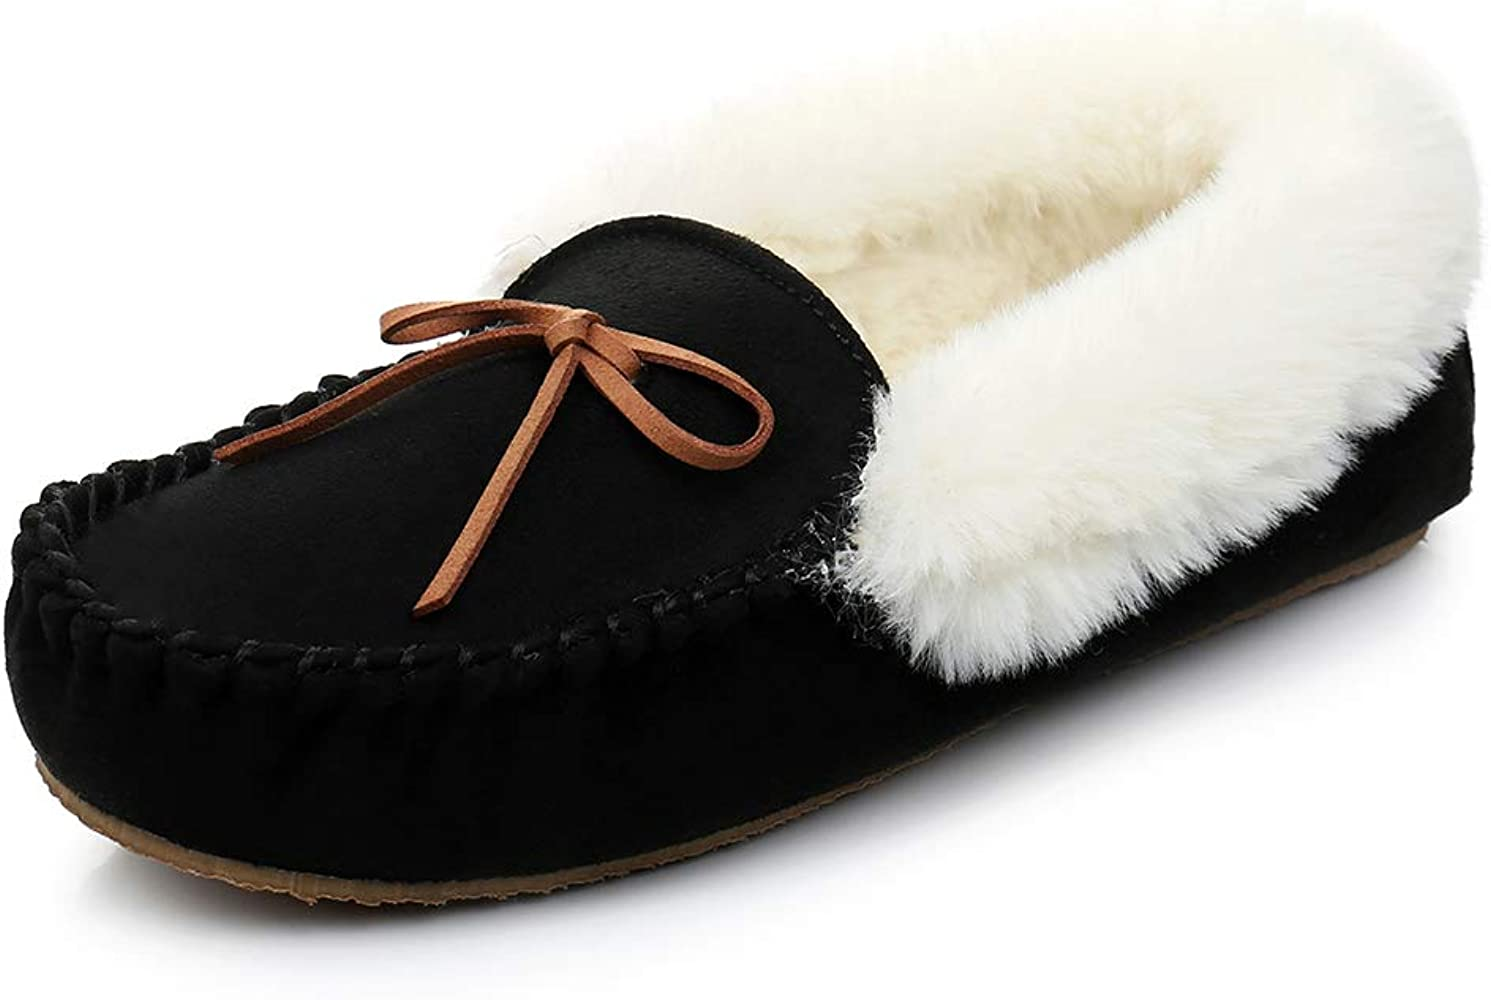 Faux Fur Lined Suede Moccasin Slippers